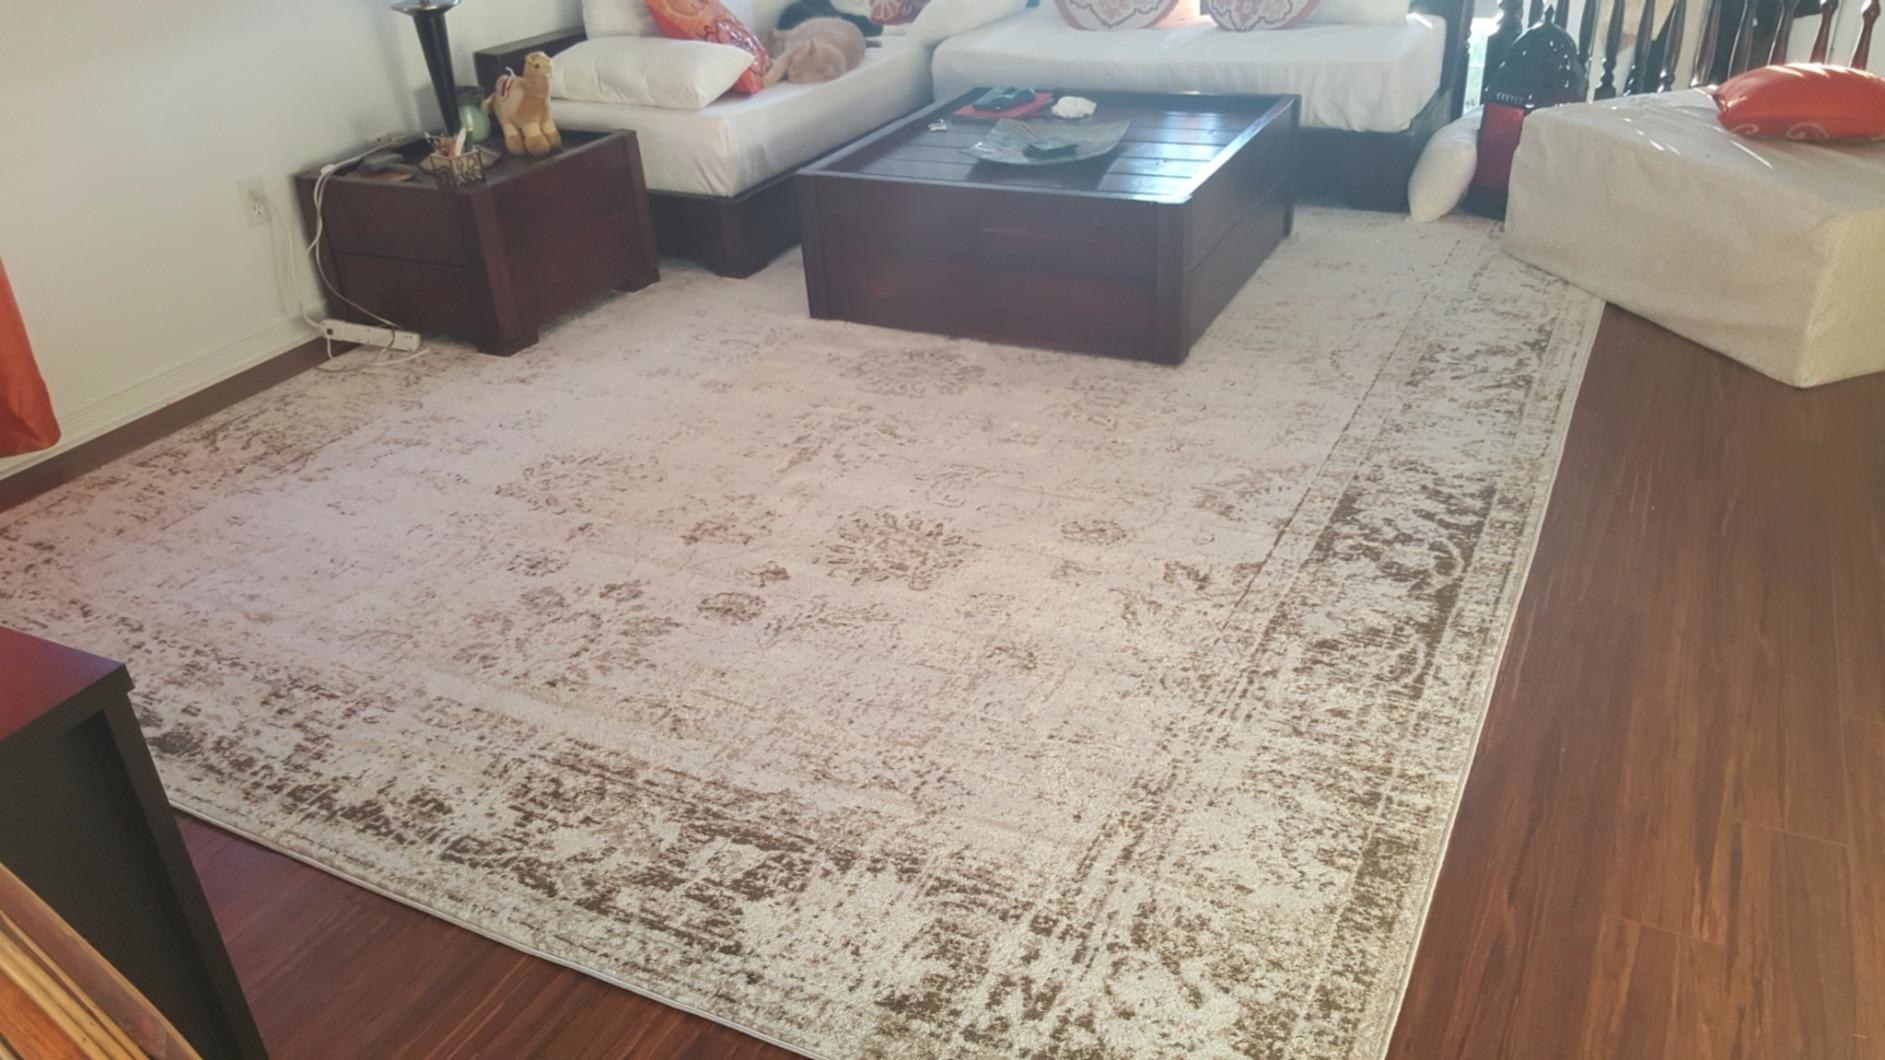 The rug in white